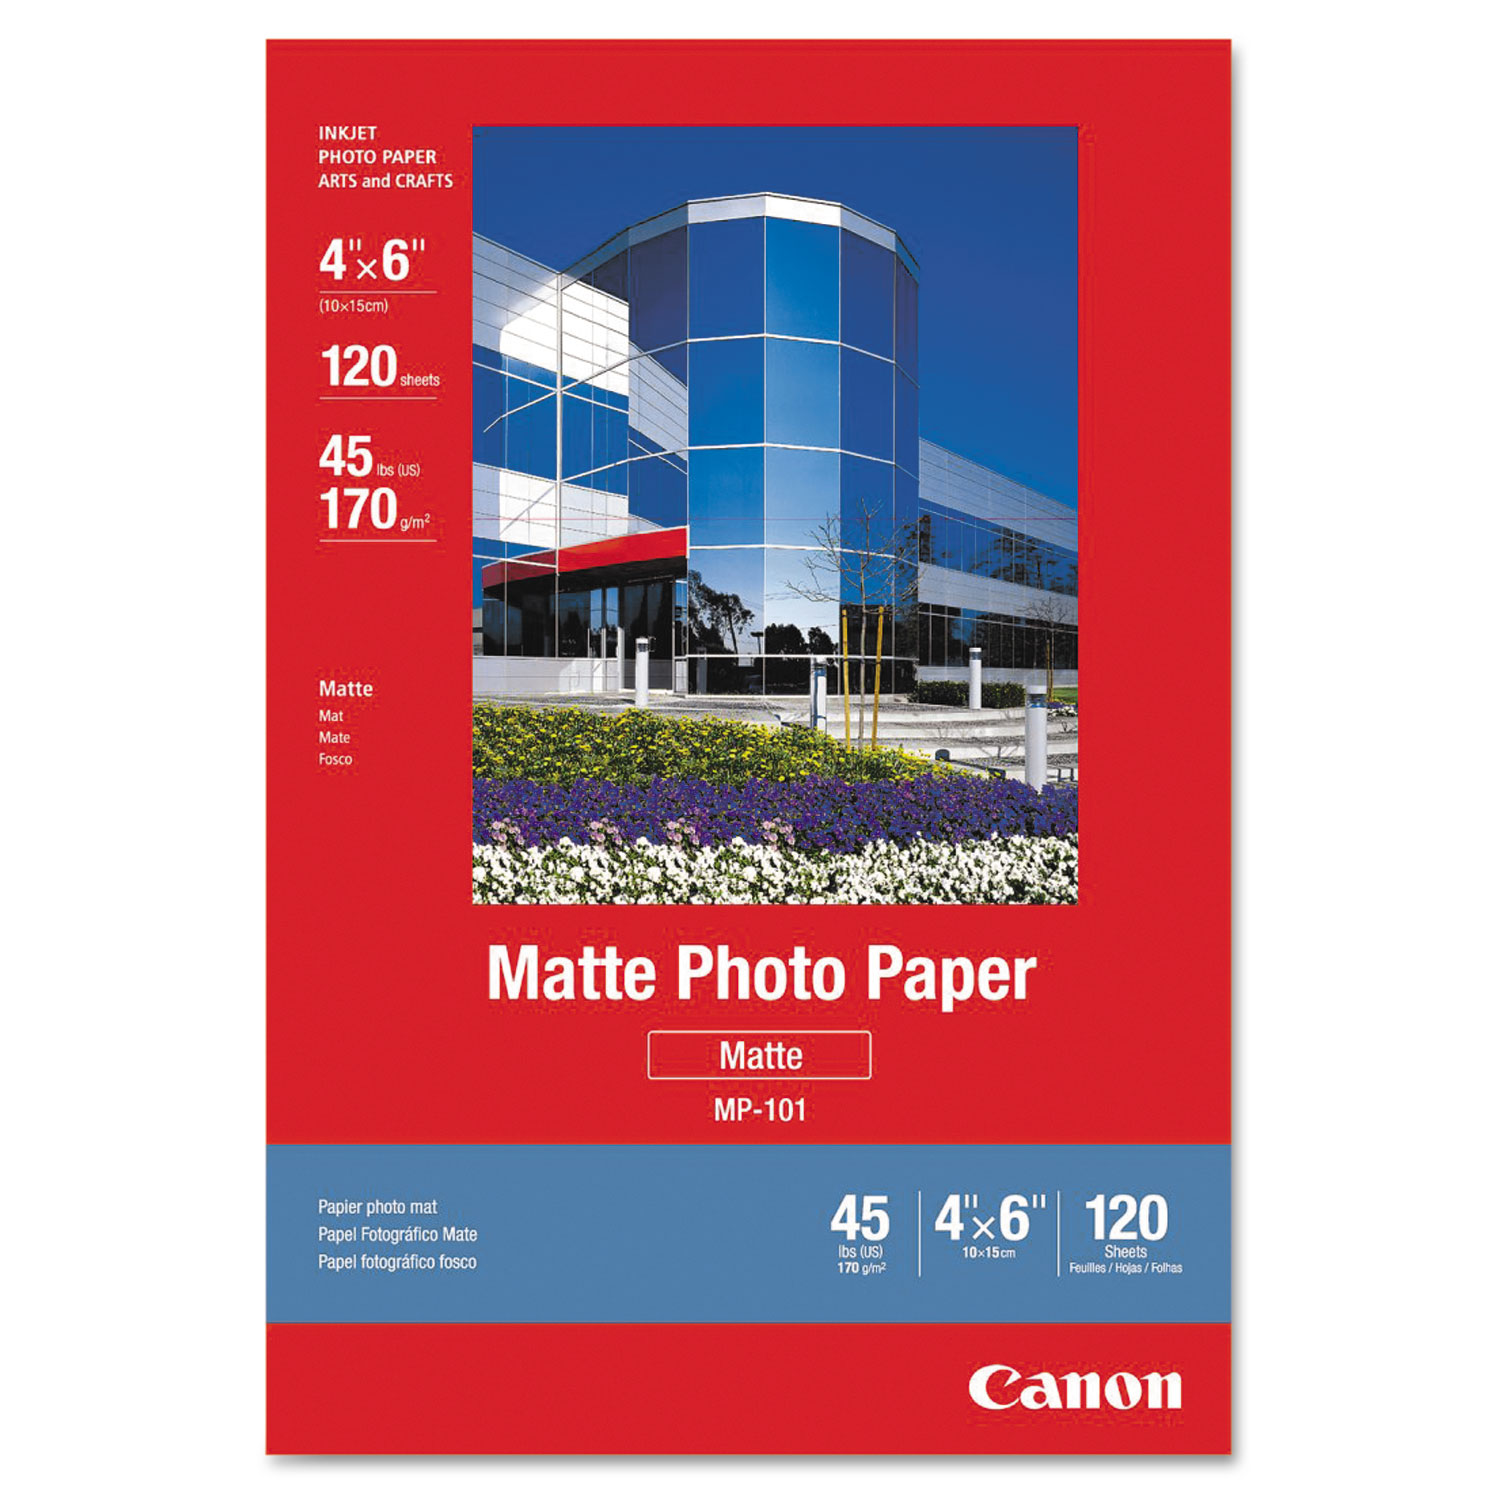 Matte paper photo books A Colorful Cartoon of a Man Bewildered By a. - Pictures Of